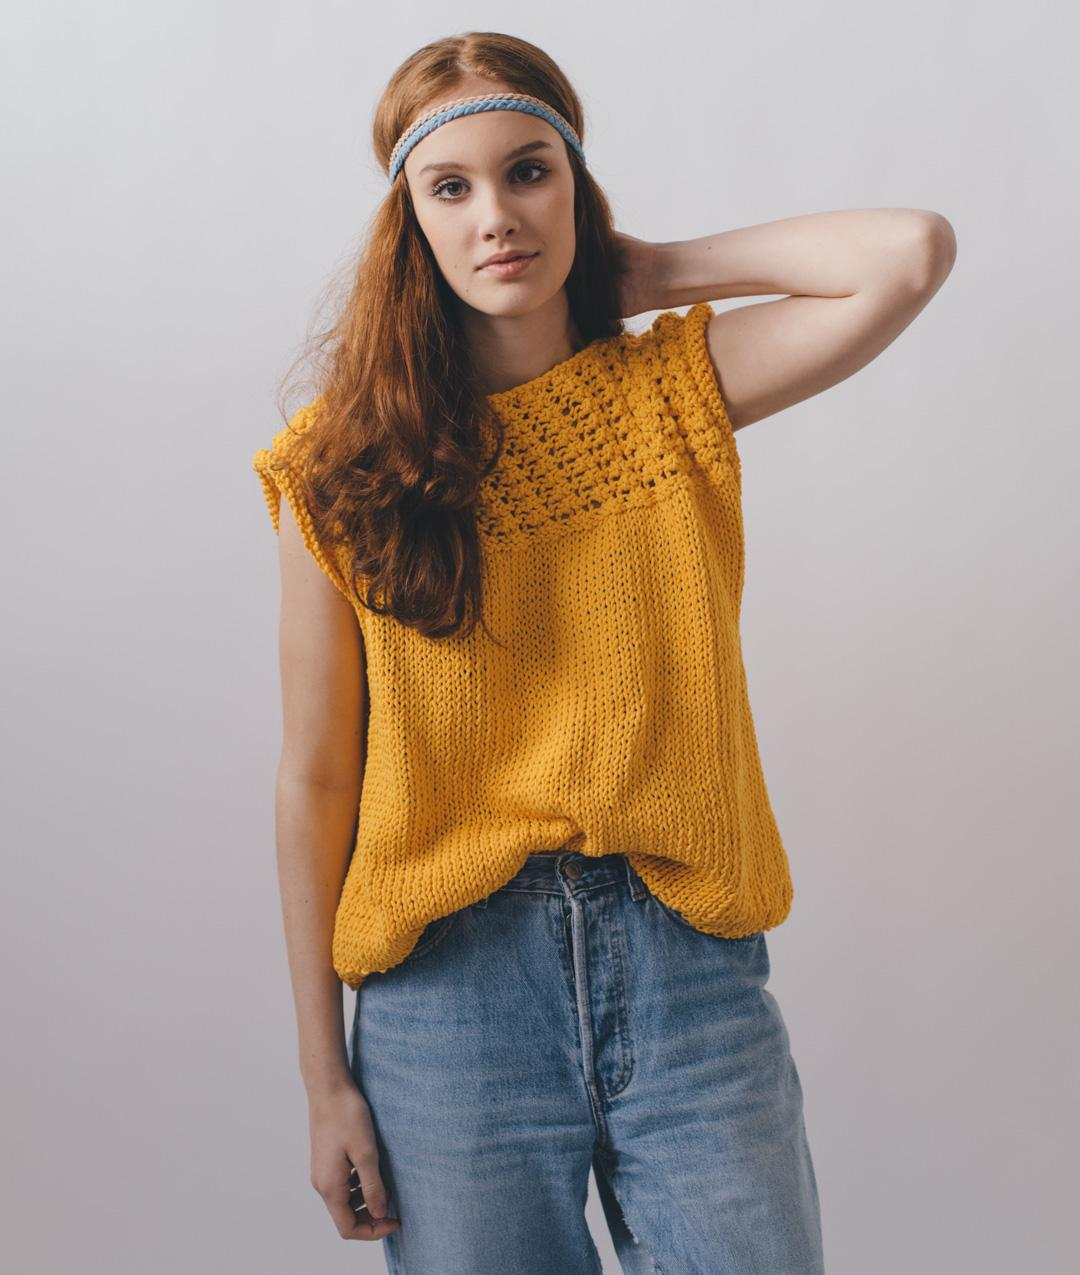 Sweaters and Tops - Cotton - Jenny Tee - 1